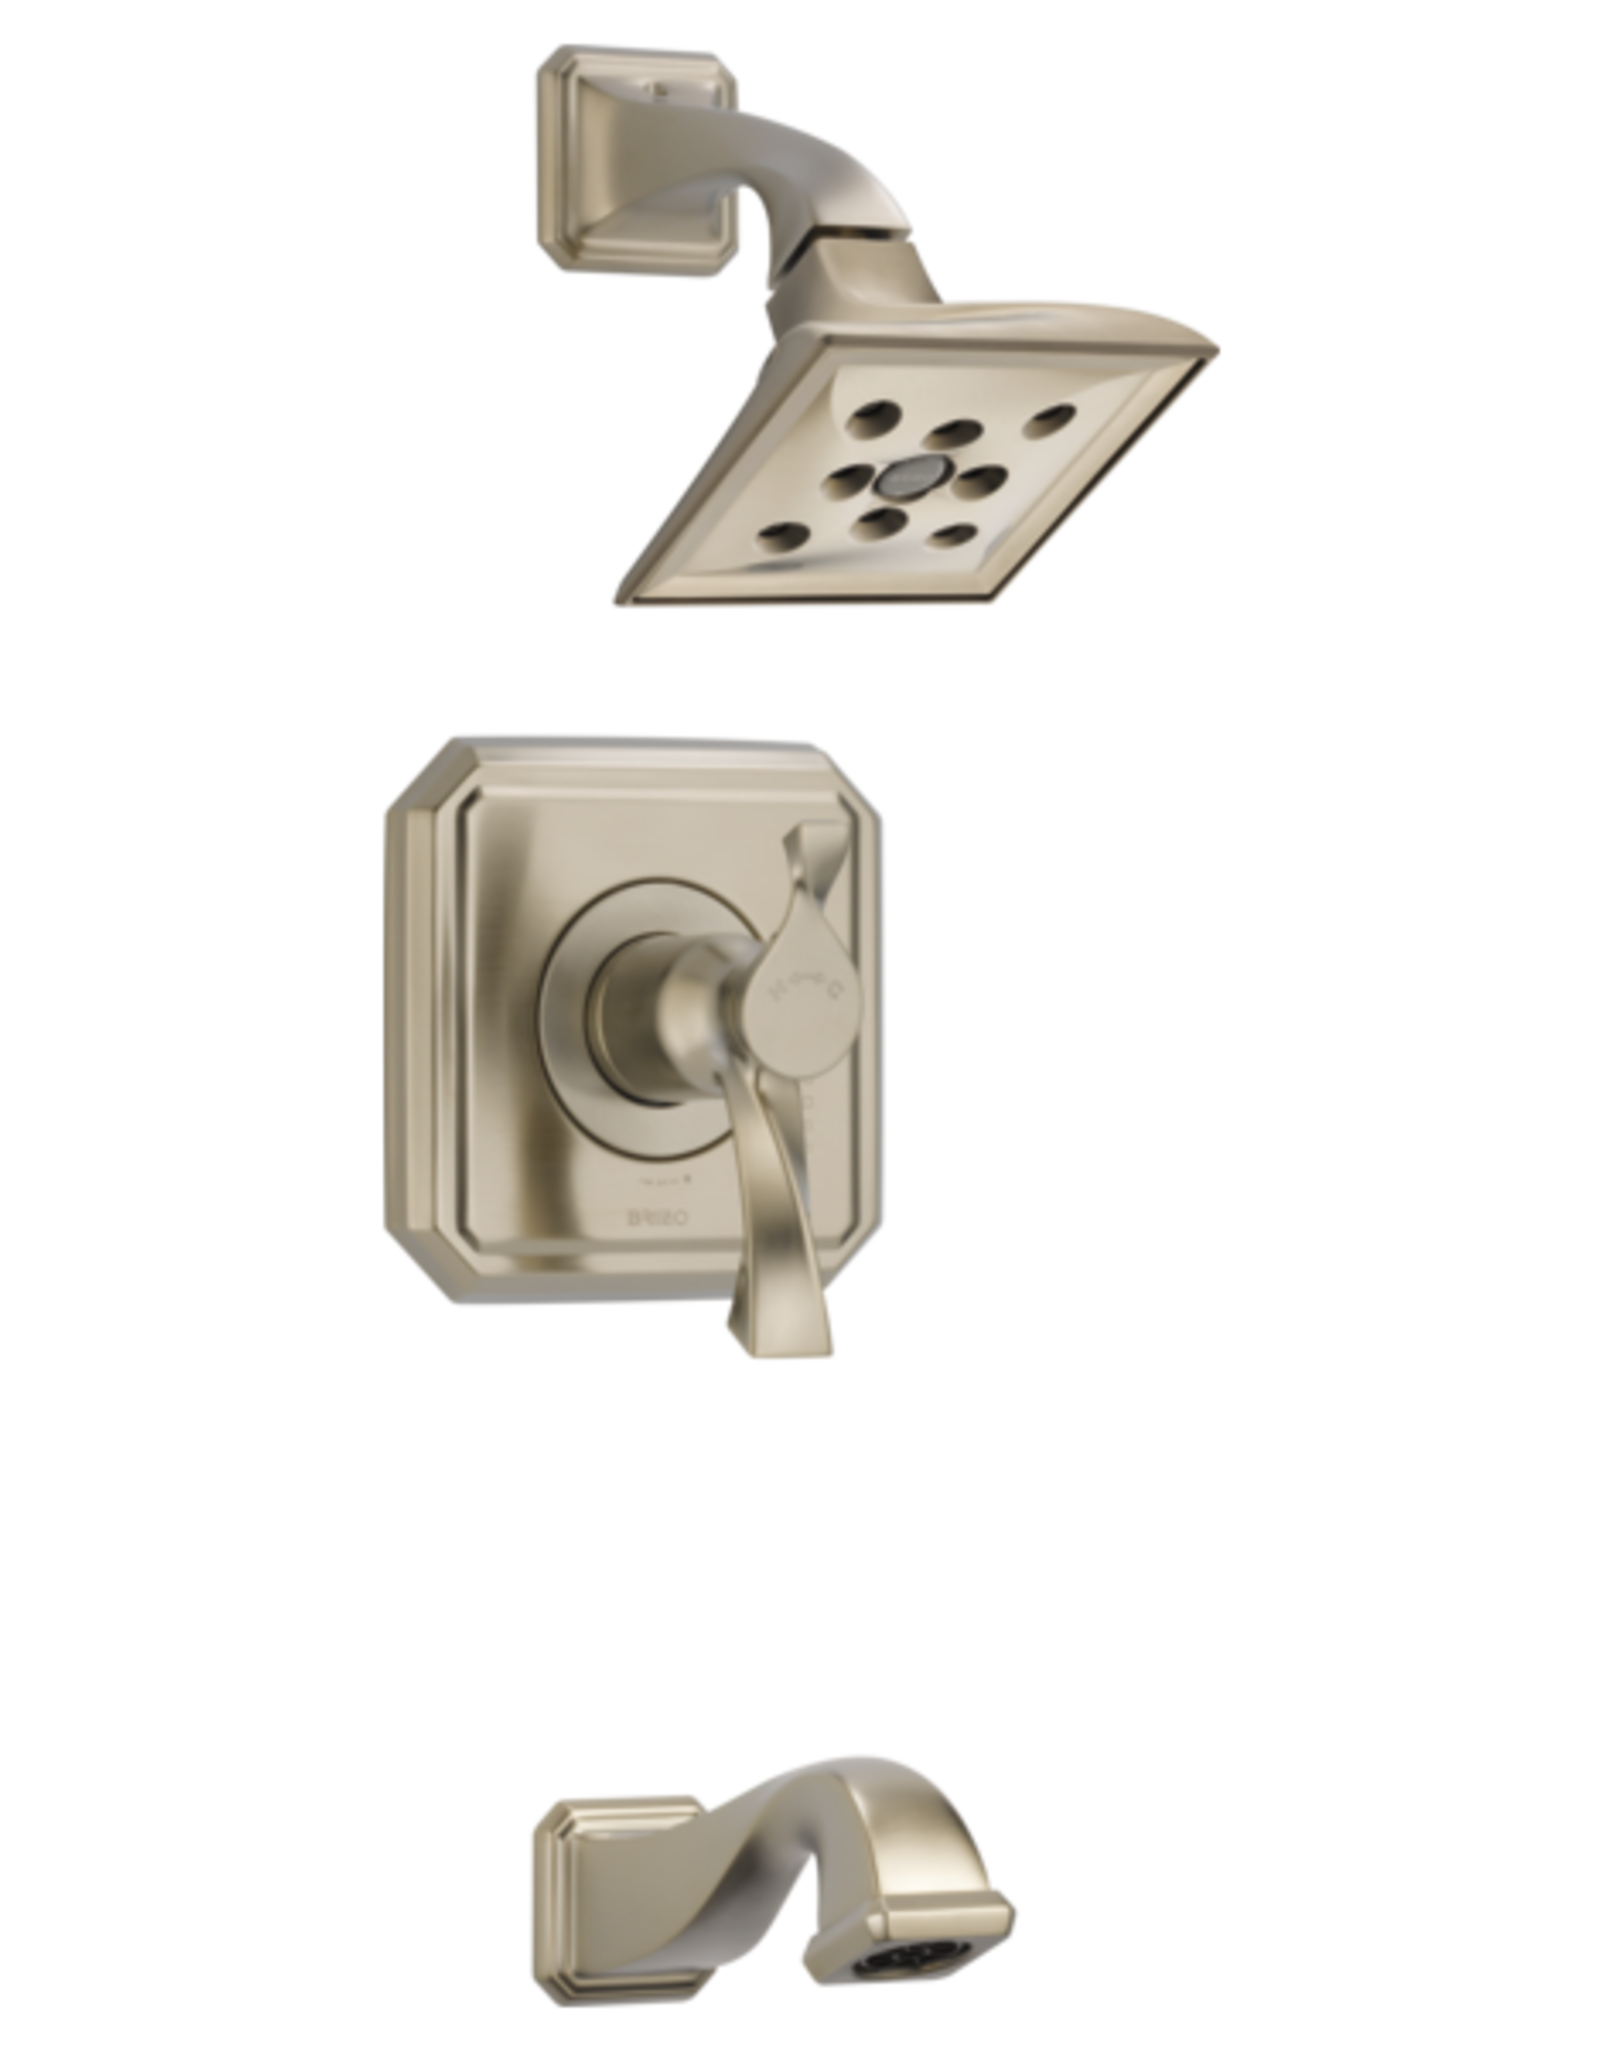 Brizo BRIZO VIRAGE - BRUSHED NICKEL TEMPASSURE THERMOSTATIC TUB/SHOWER TRIM